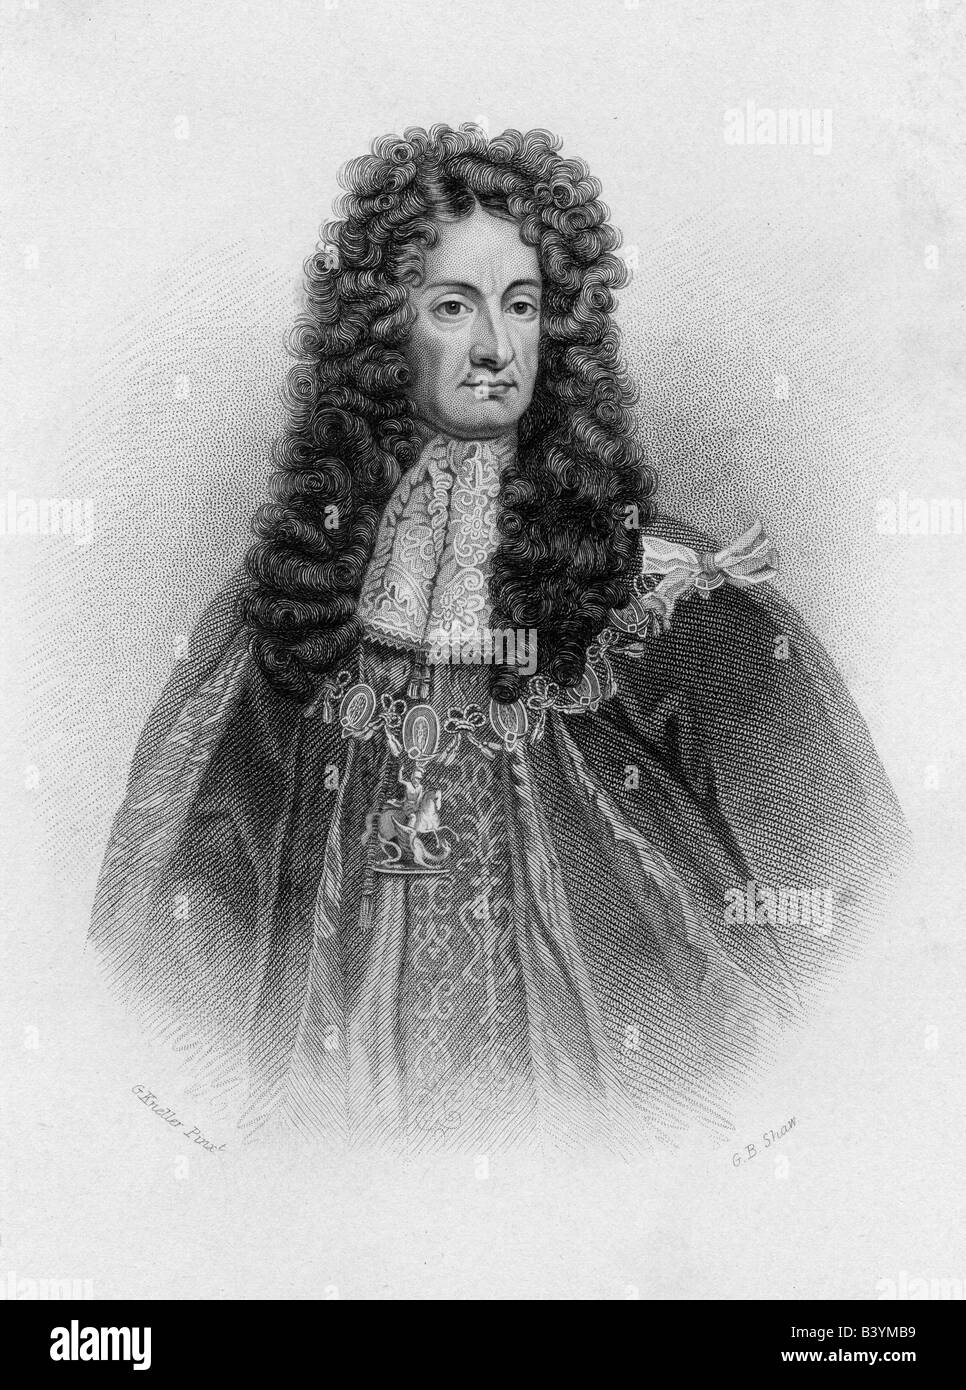 Charles II, 29.5.1630 - 6.2.1685, King of England 29.5.1660 - 29.5.1685, portrait, engraving by G. B. Shaw, 19th - Stock Image